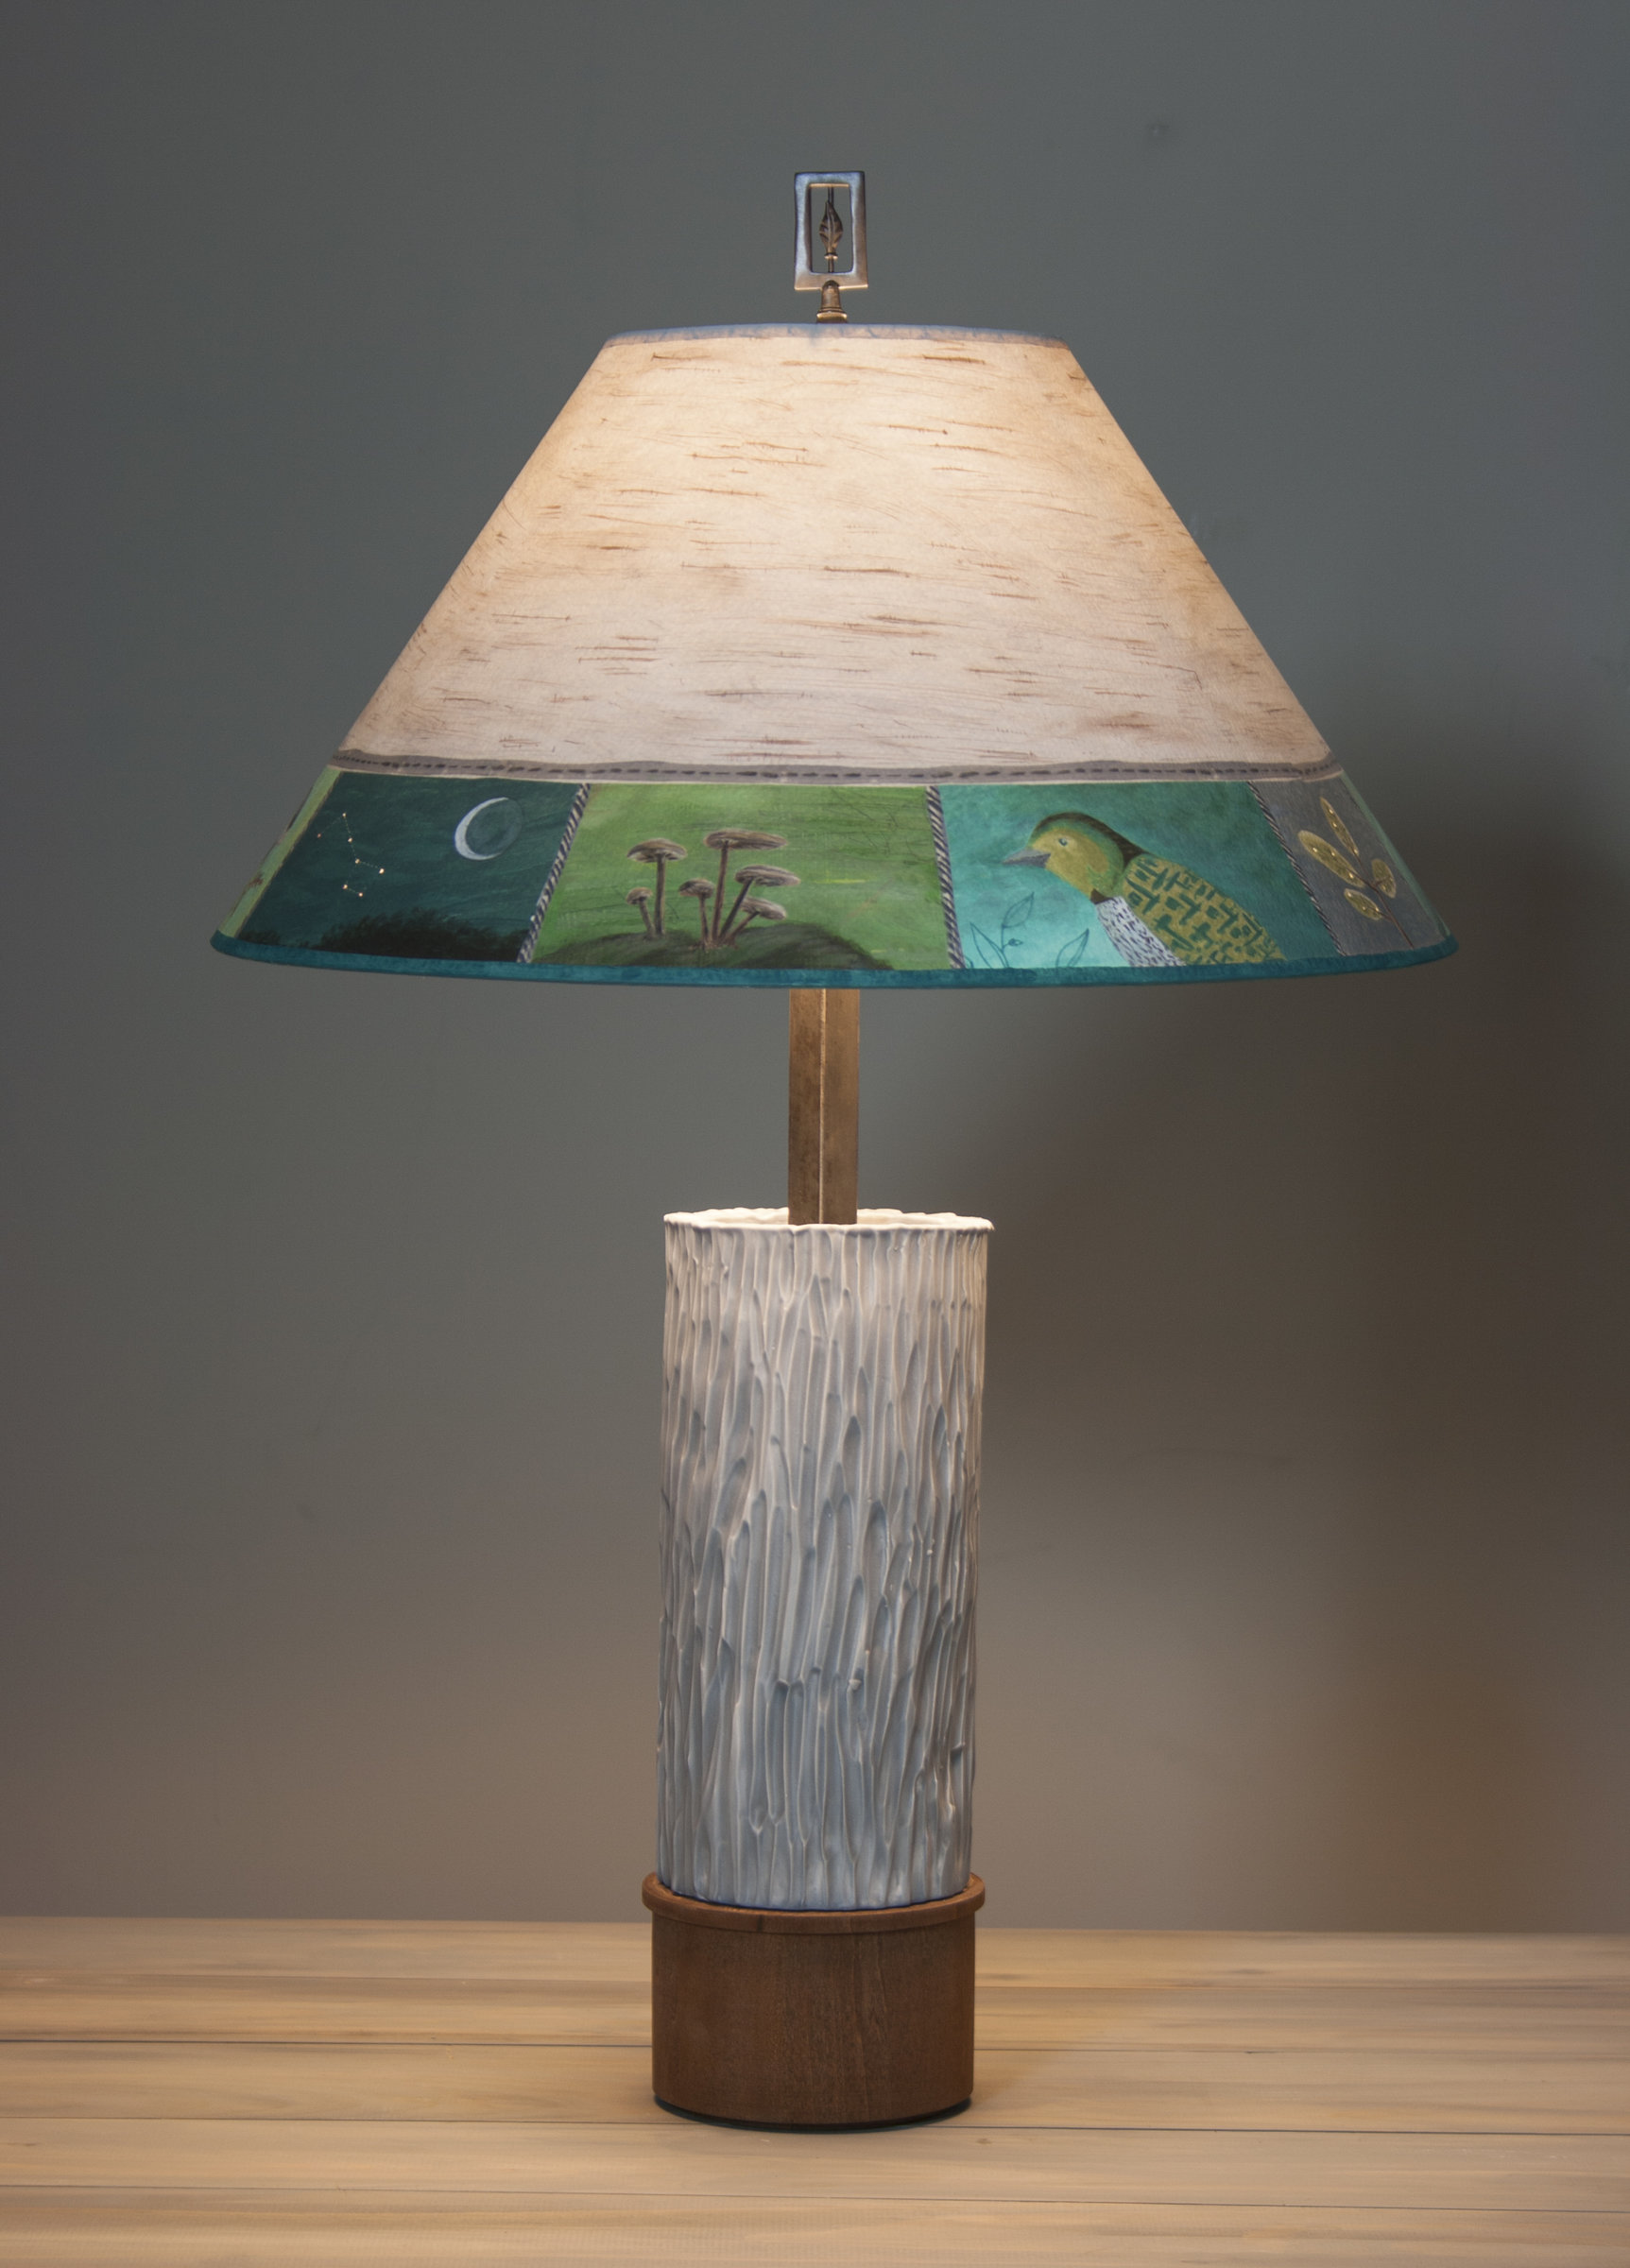 Ceramic And Wood Table Lamp With Large Conical Shade In Woodland